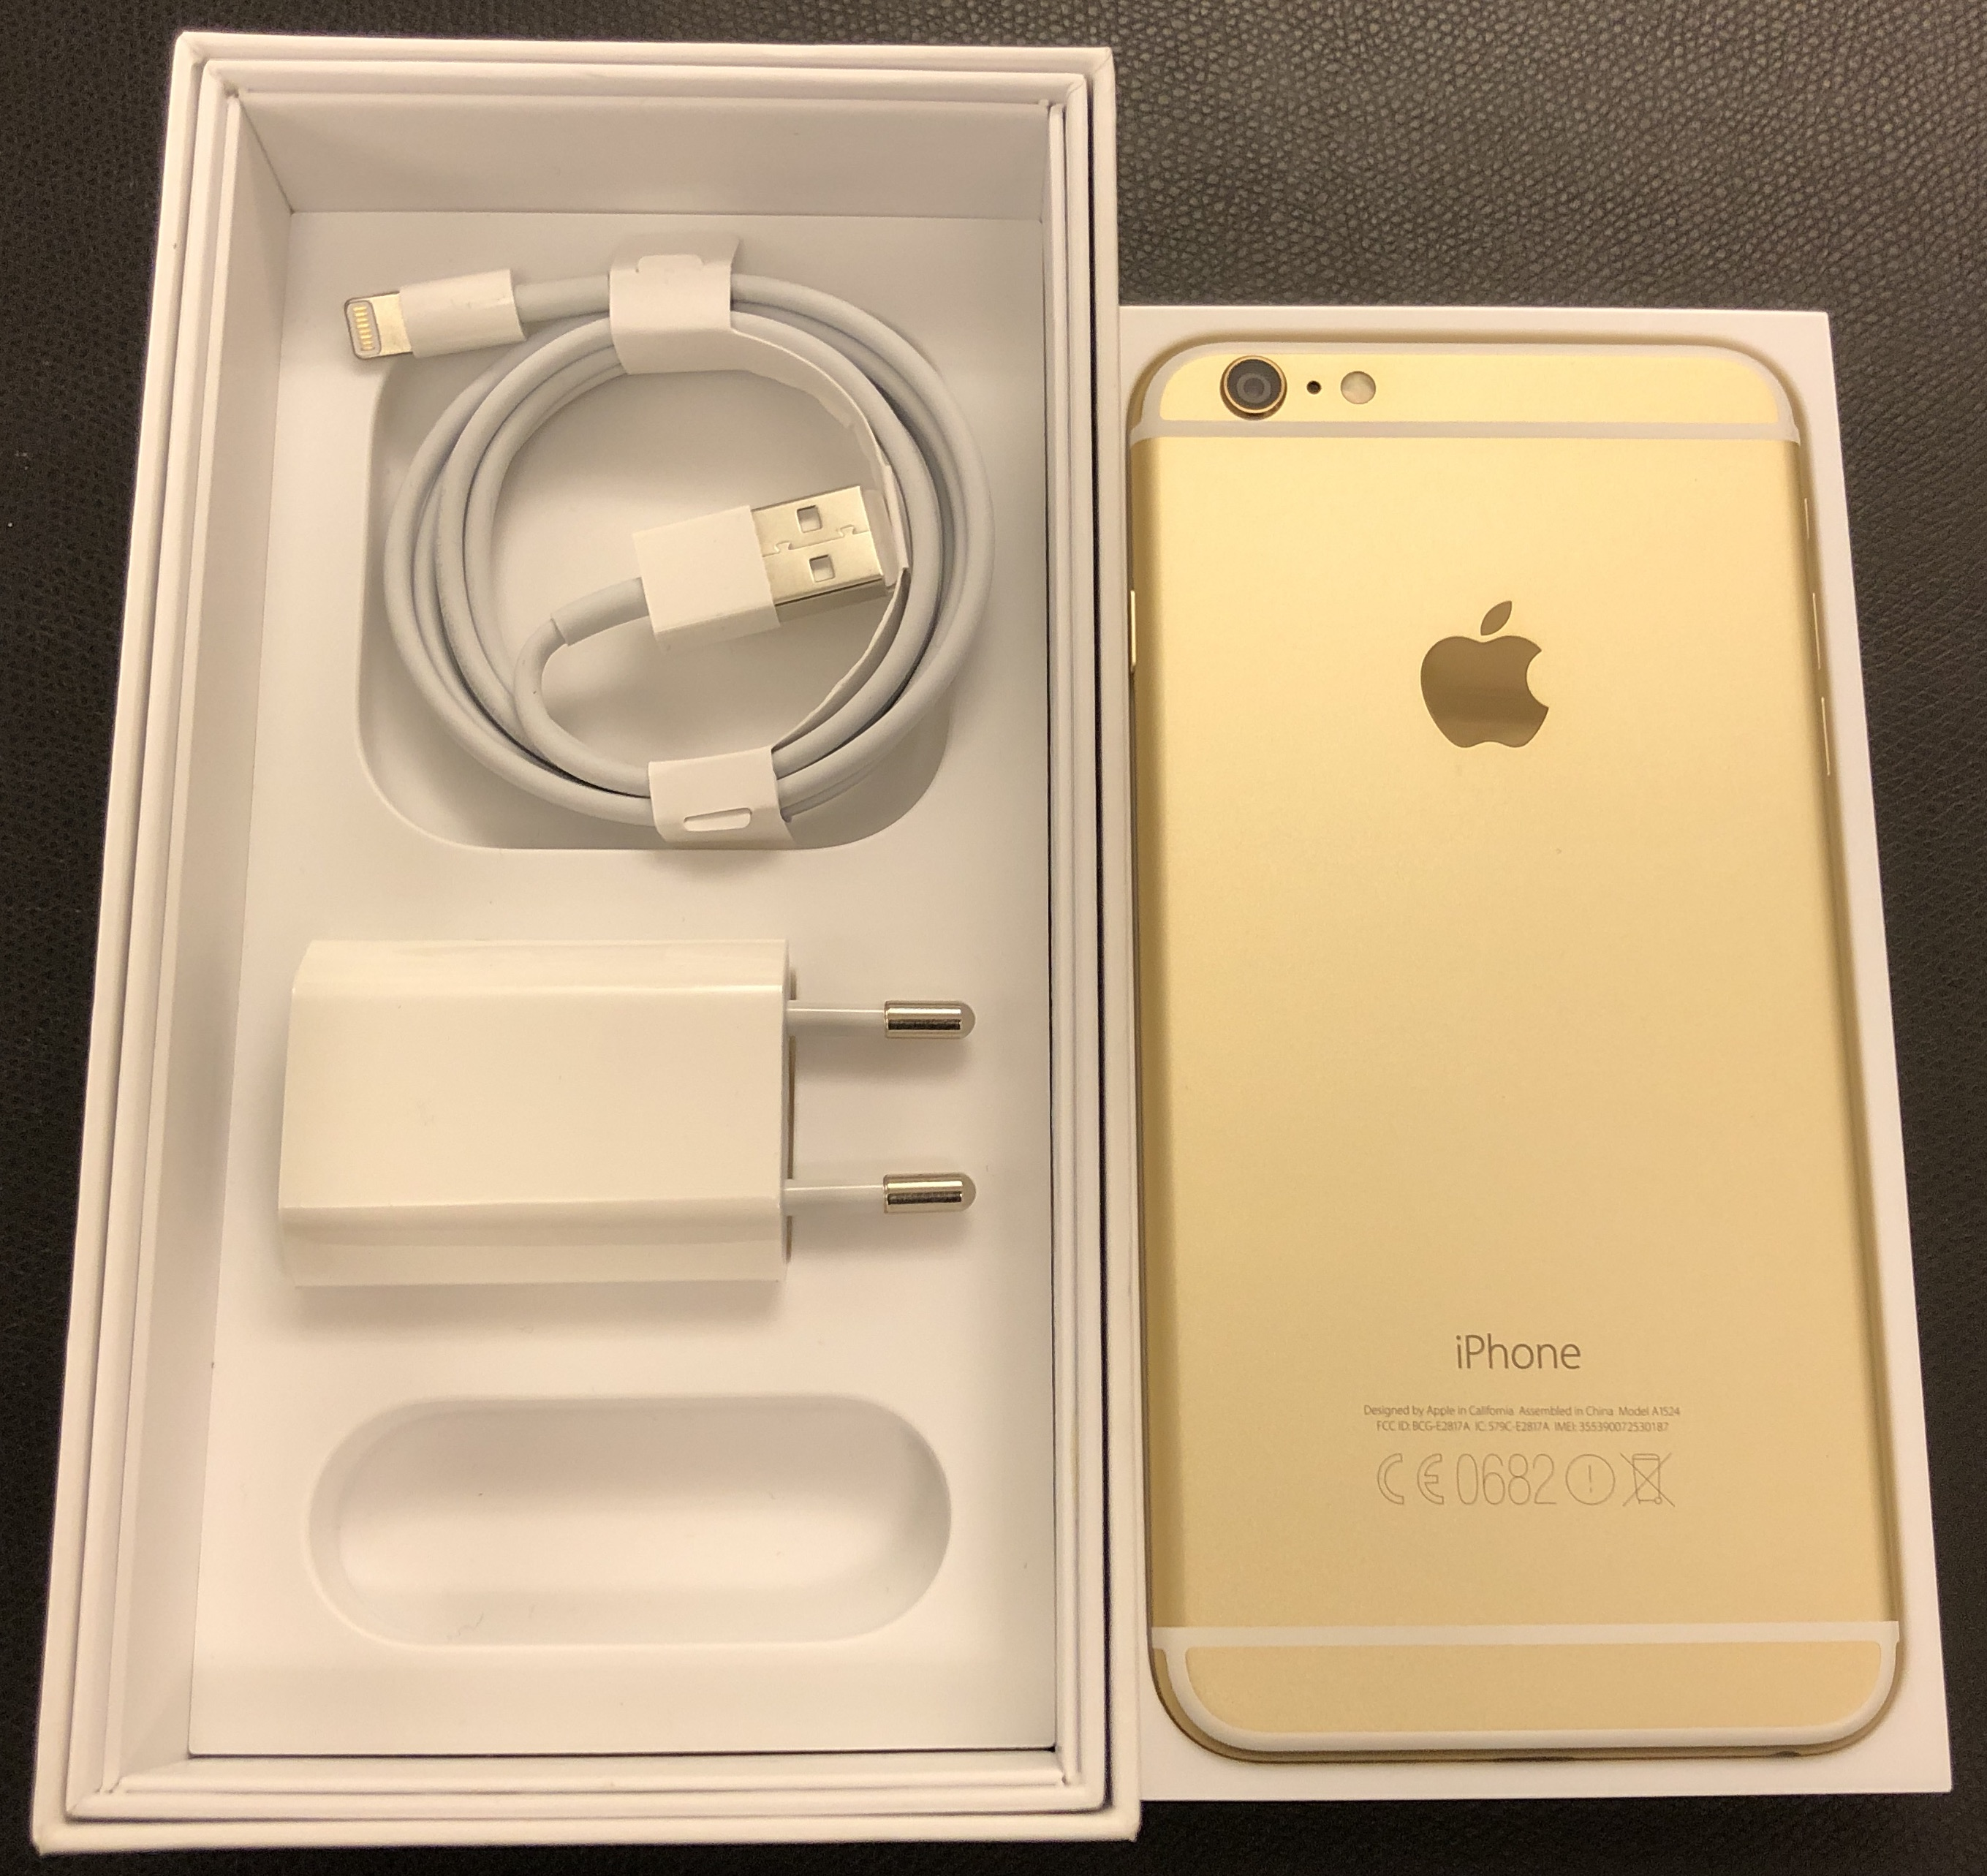 iPhone 6 Plus 16GB, 16GB, Gold, bild 2